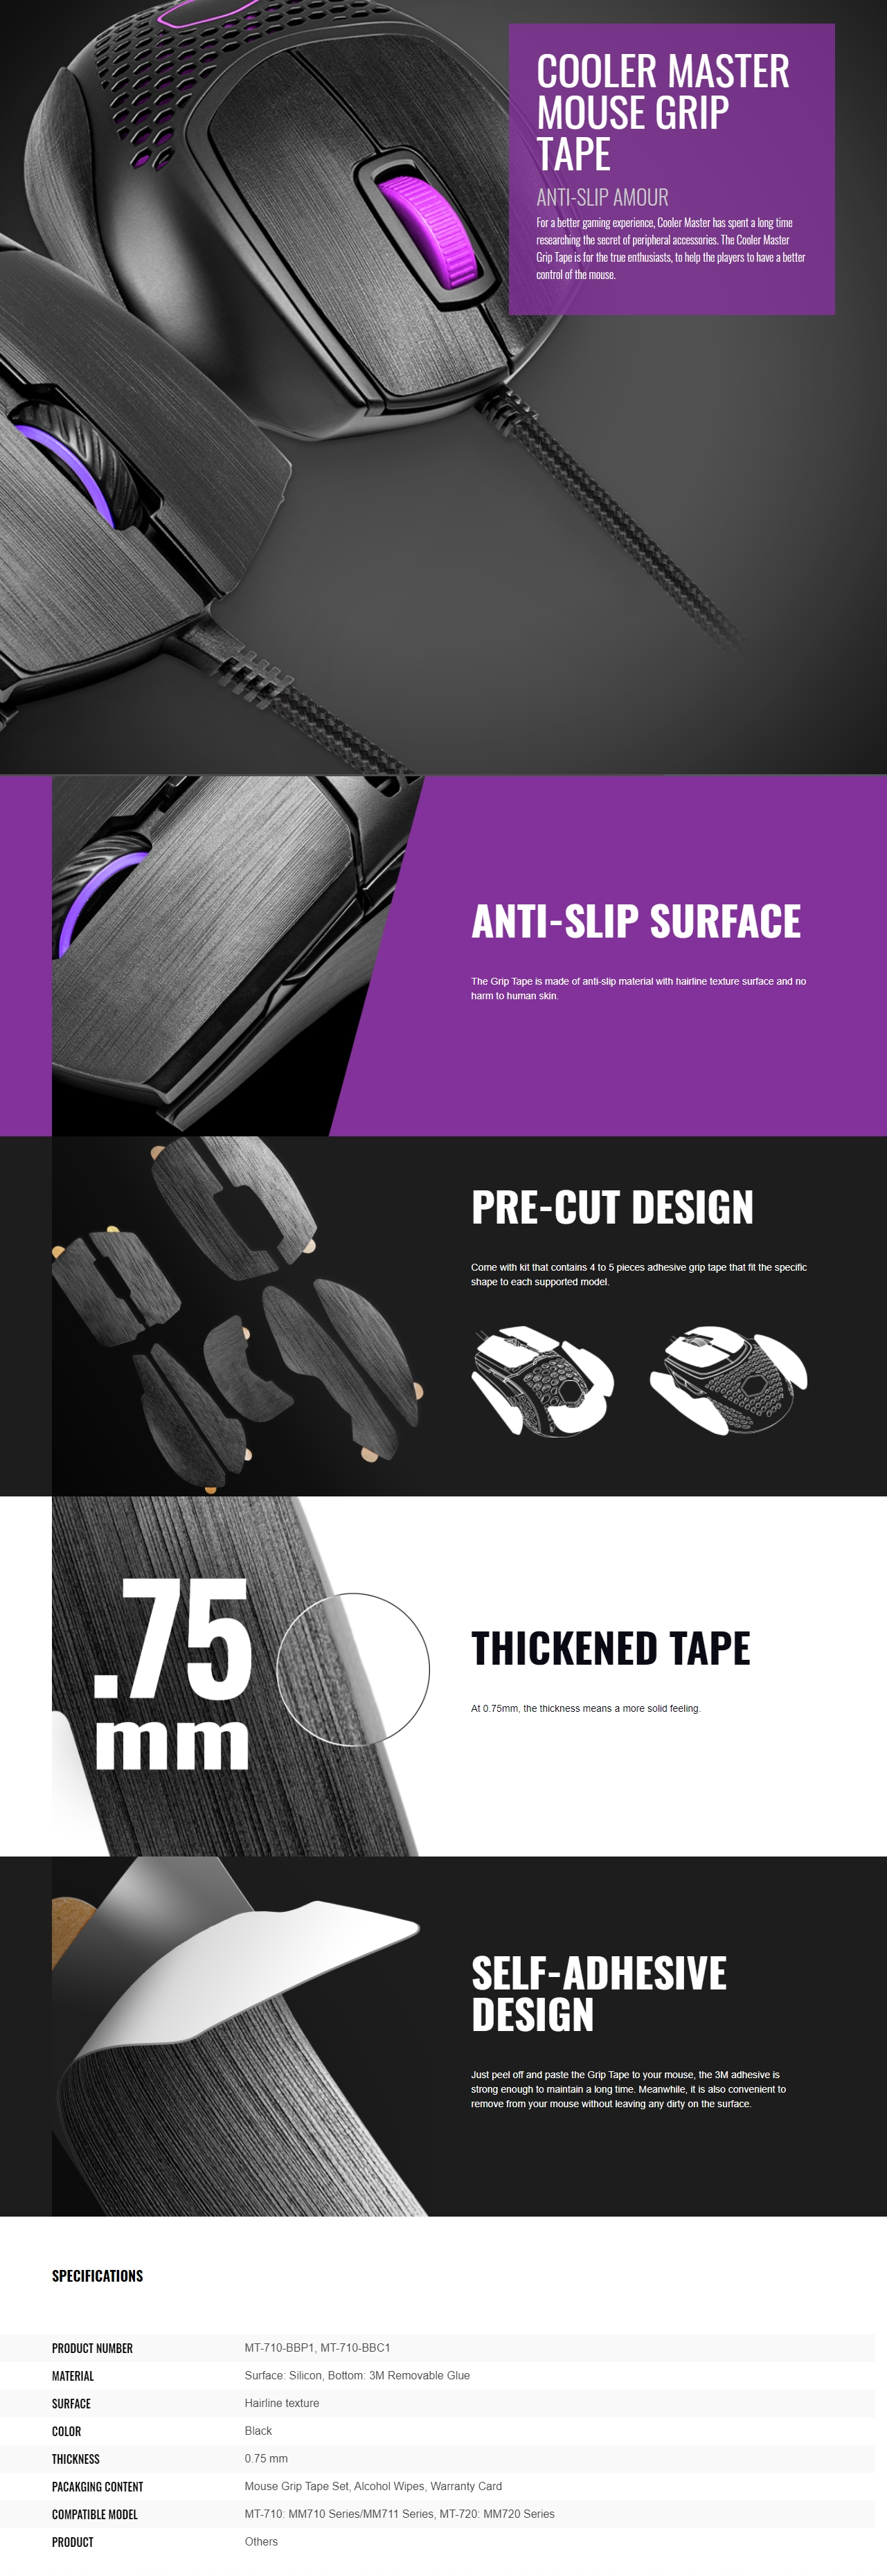 A large marketing image providing additional information about the product Cooler Master MM720 Mouse Grip Tape - Additional alt info not provided